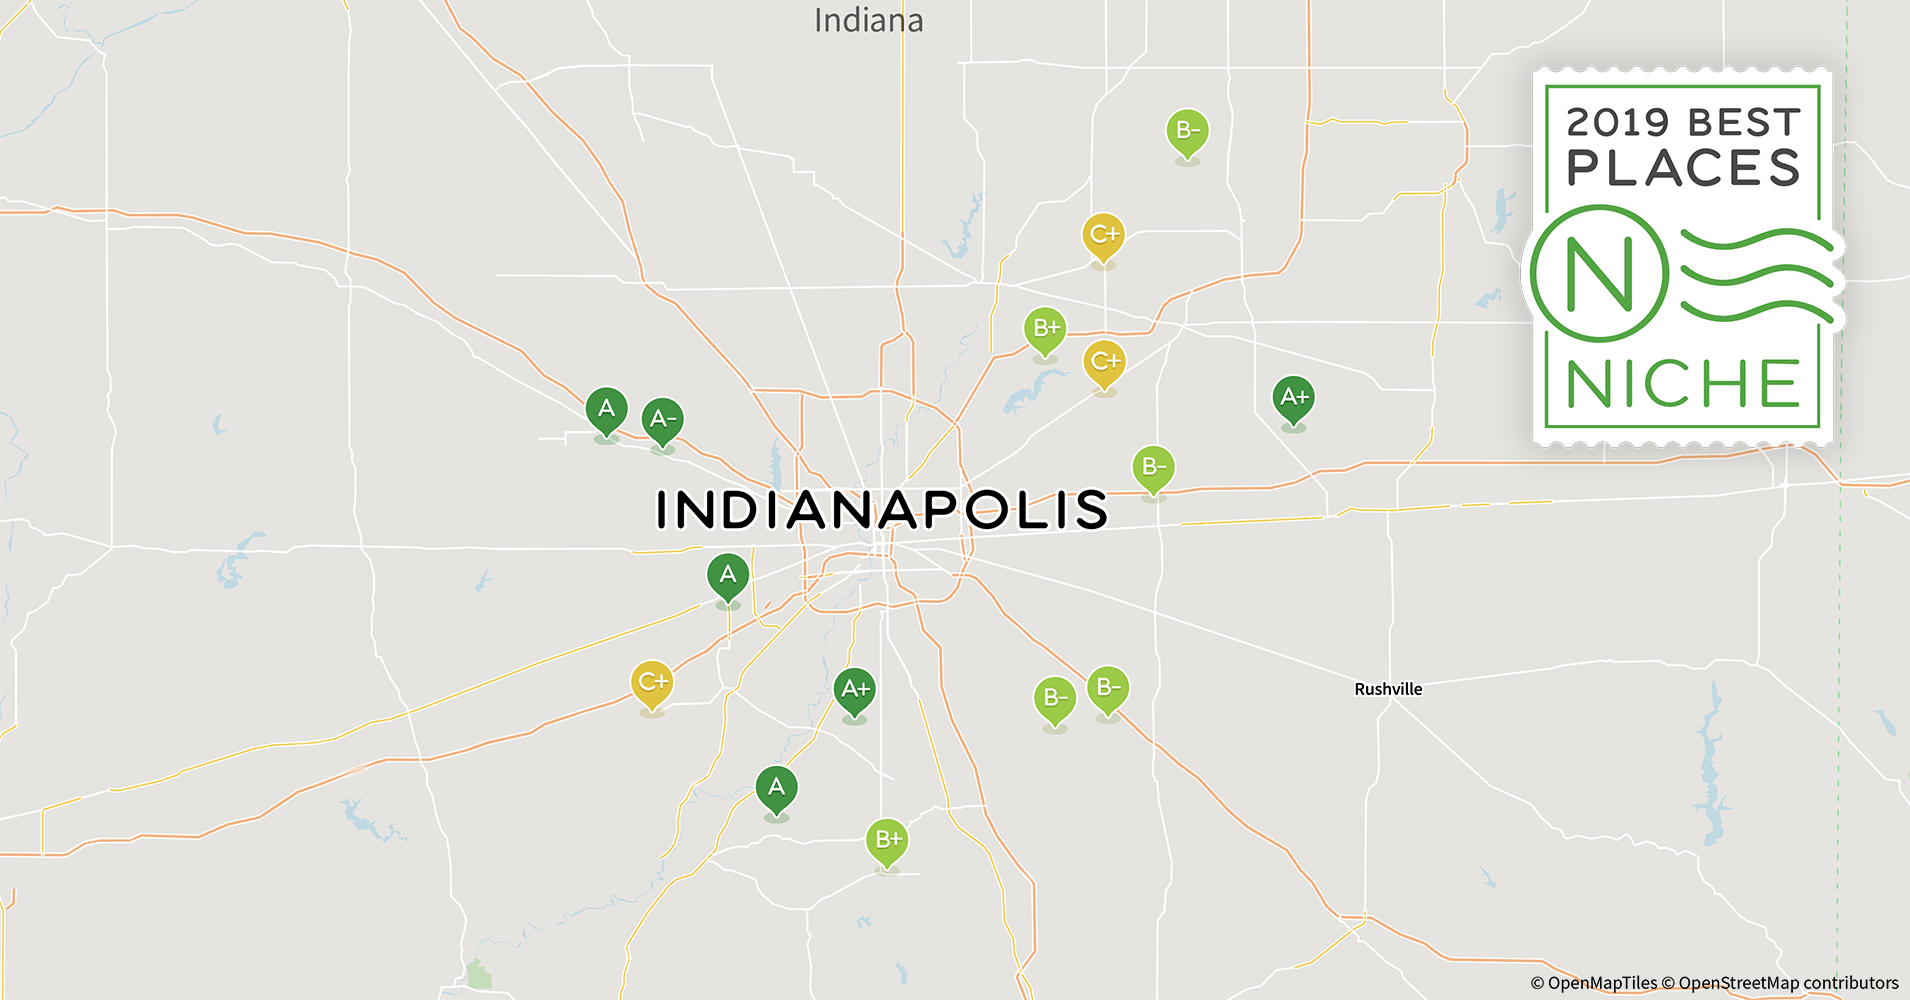 2019 Best Places to Live in the Indianapolis Area - Niche